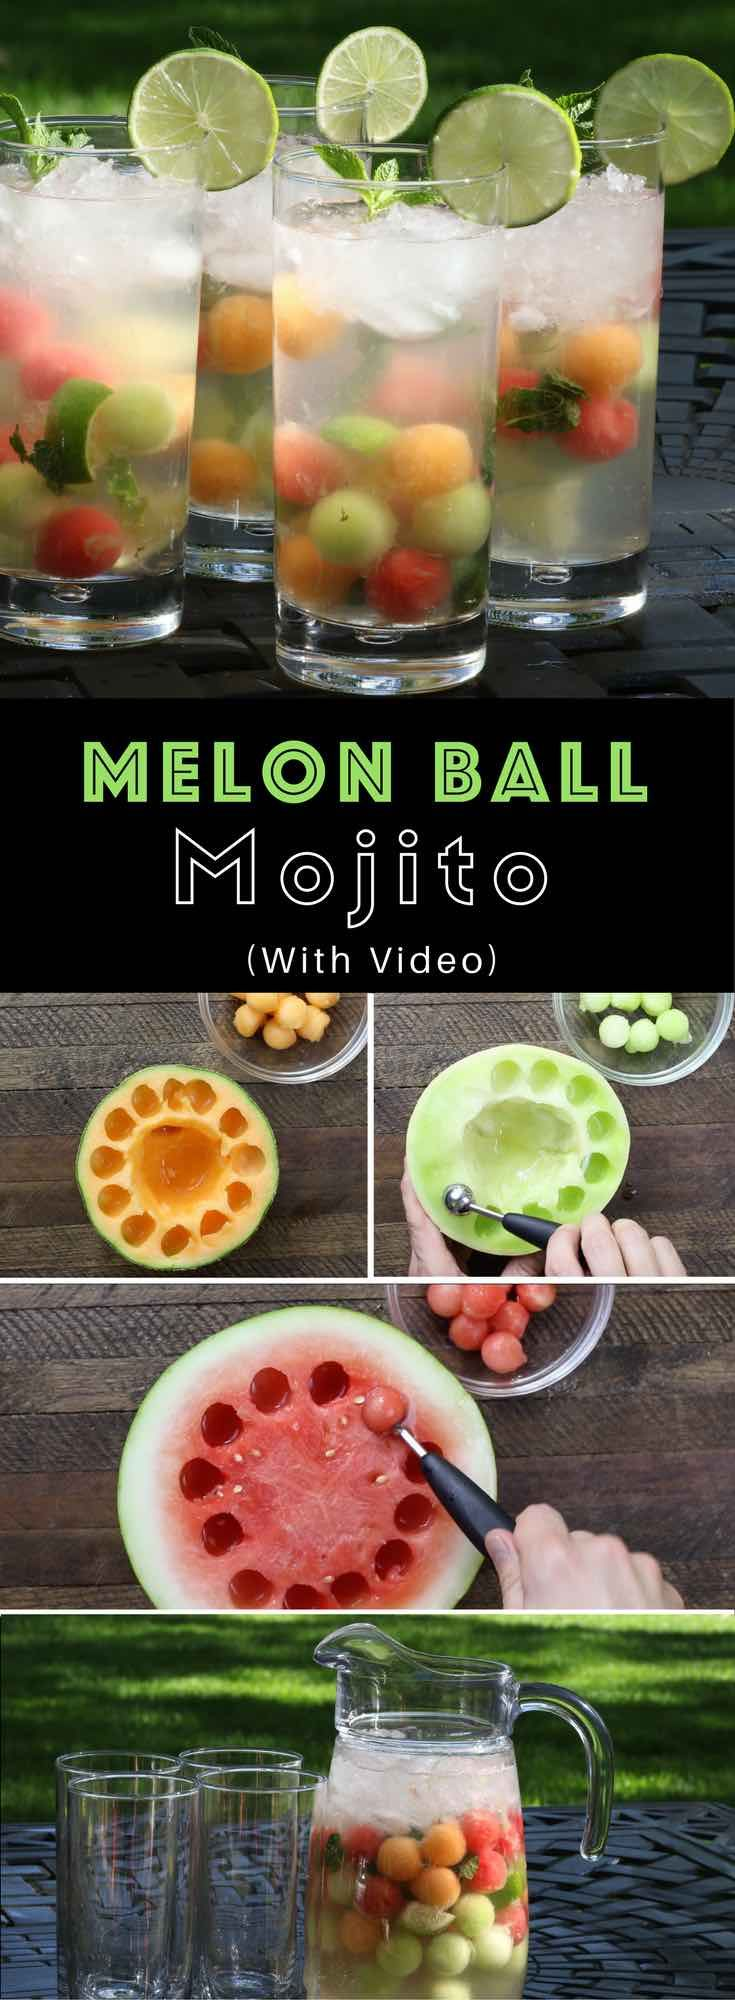 Easy Melon Ball Mojitos – the classic mojito cocktail fused with the sweetness and freshness of melon balls, delivering this refreshing and beautiful drink. All you need is only a few ingredients: mint, watermelon, cantaloupe and honeydew melons.